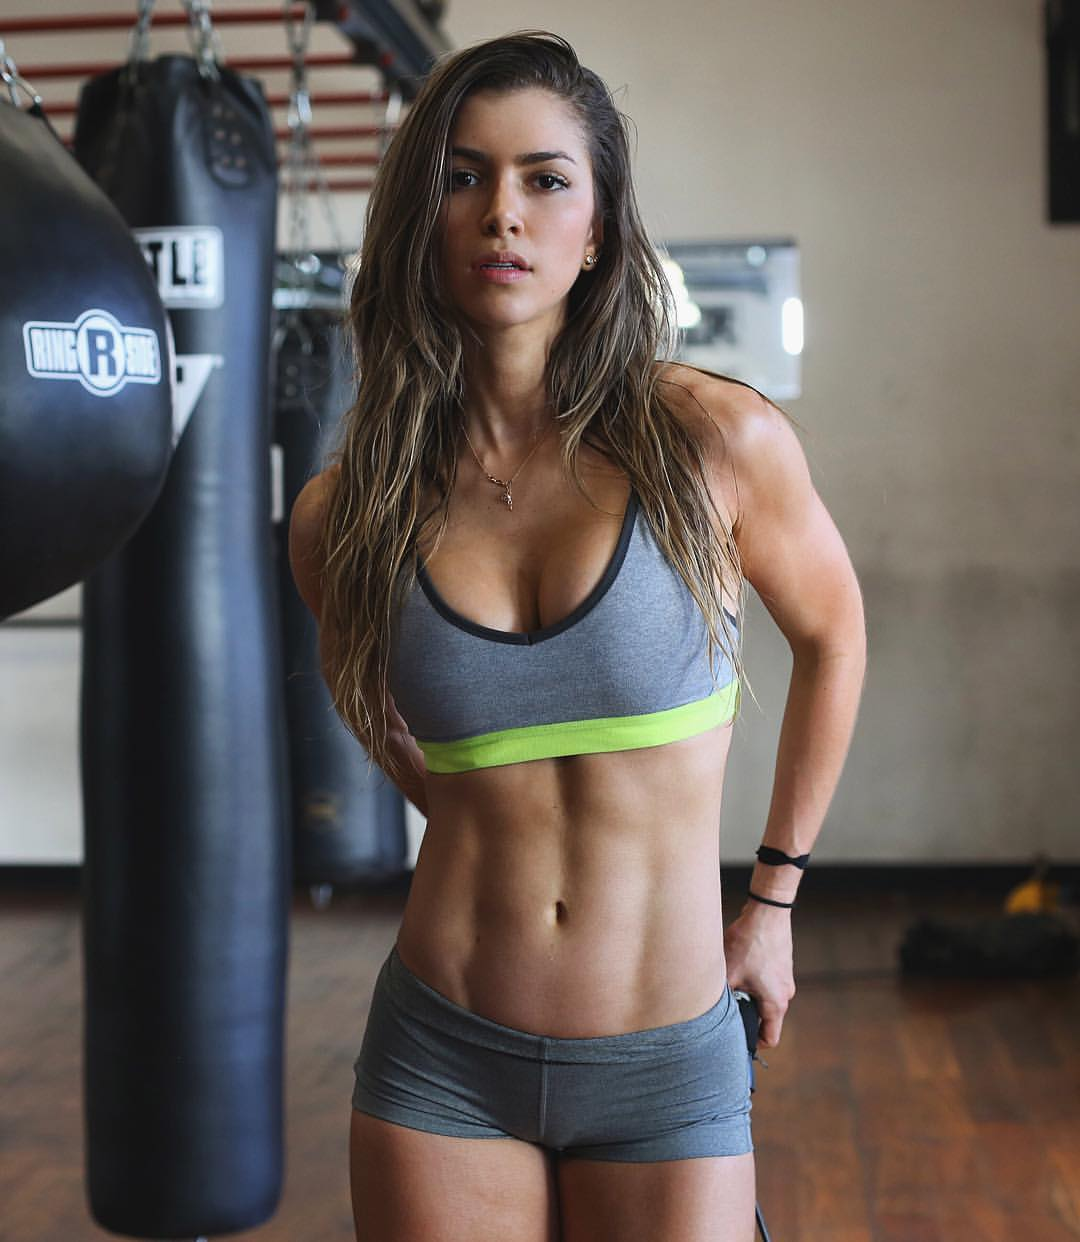 new product 0f43e d50e9 Profile: Who Is Anllela Sagra, The Beautiful Colombian ...